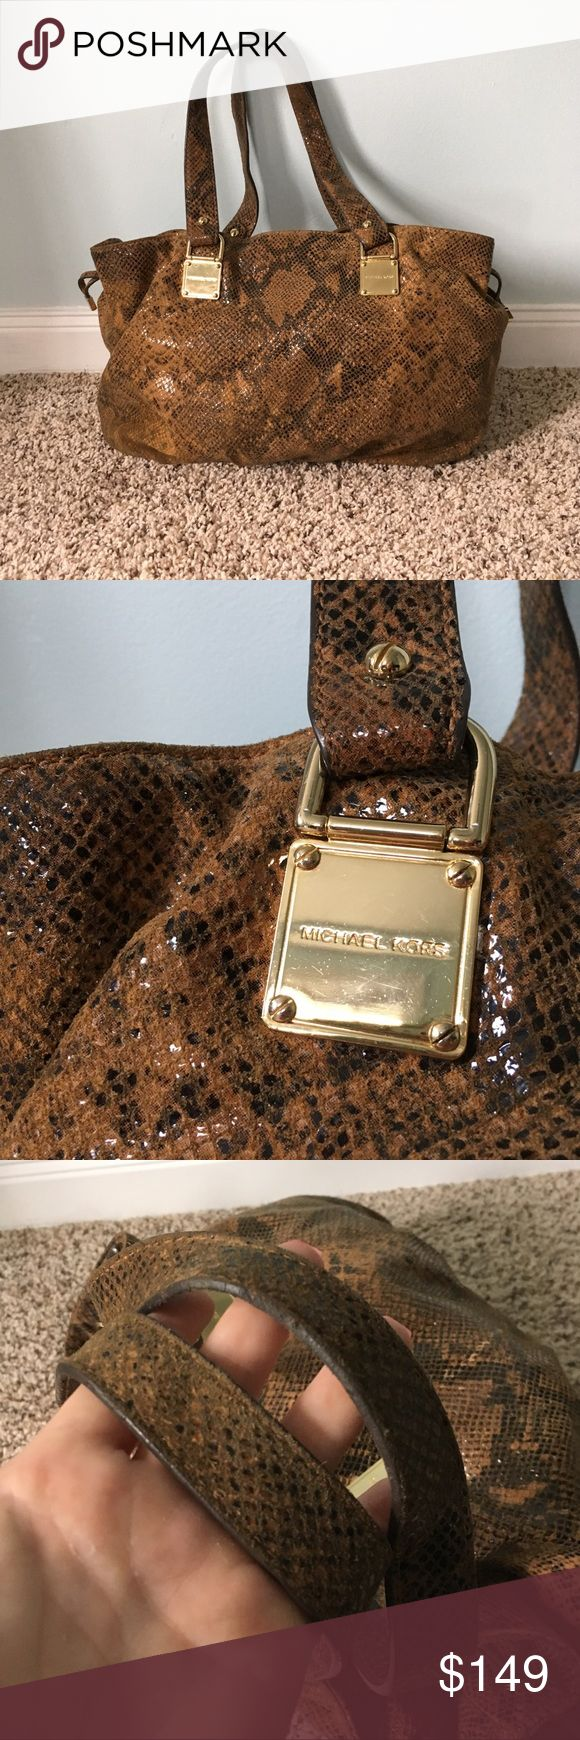 STUNNING MK Snakeskin MICHAEL KORS HANDBAG Absolutely beautiful snakeskin Michael Kors bag - brown and tan in color in good used condition with soft snakeskin exterior and clean fabric interior large sized and authentic of course Offers welcome. Ships next day. Suggested user. Posh mentor. Top rated seller. Michael Kors Bags Shoulder Bags